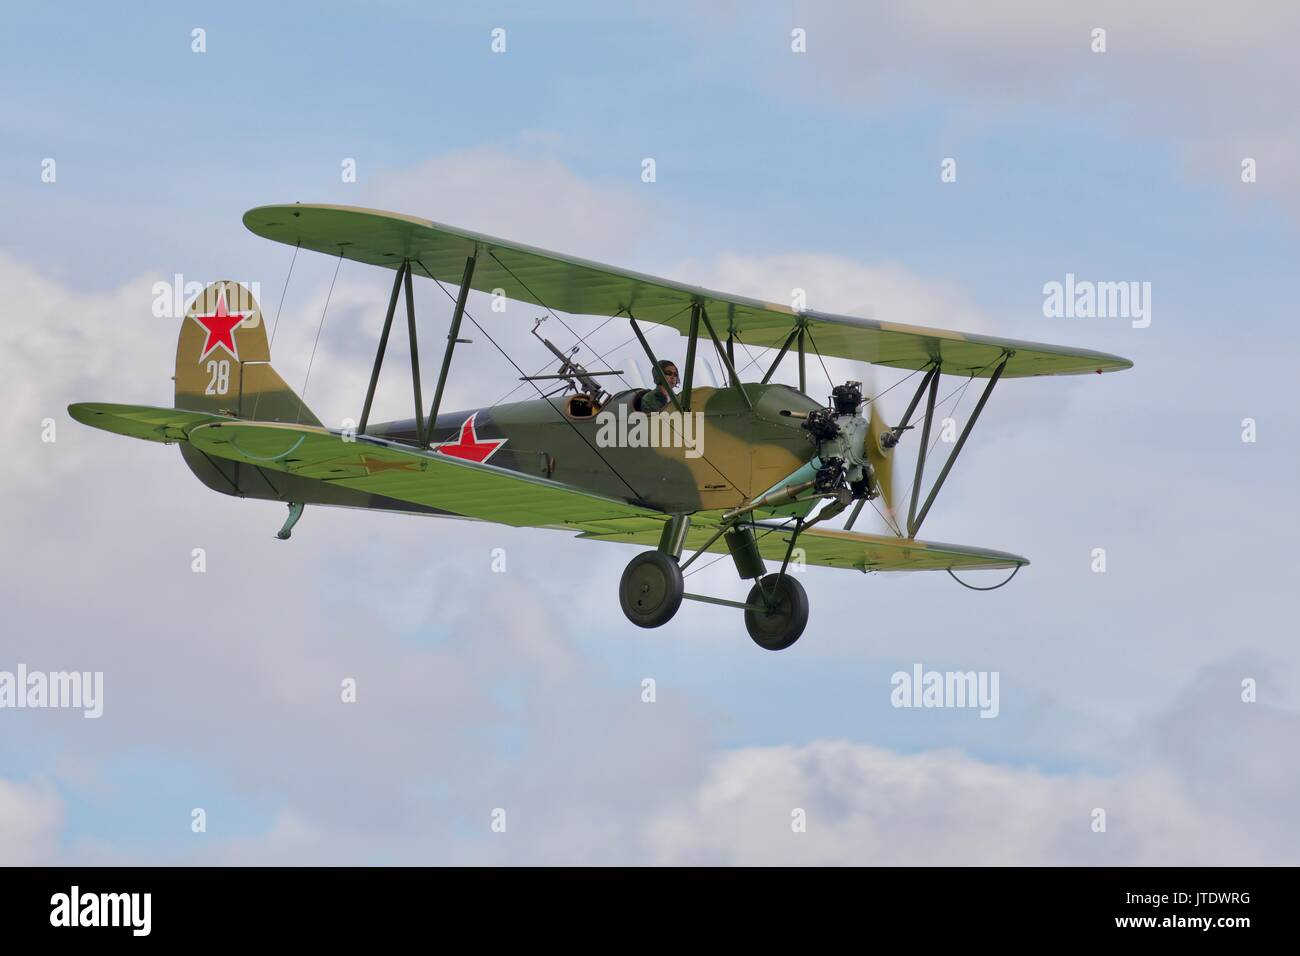 Polikarpov po2 flying at Old Warden Aerodrome - Stock Image